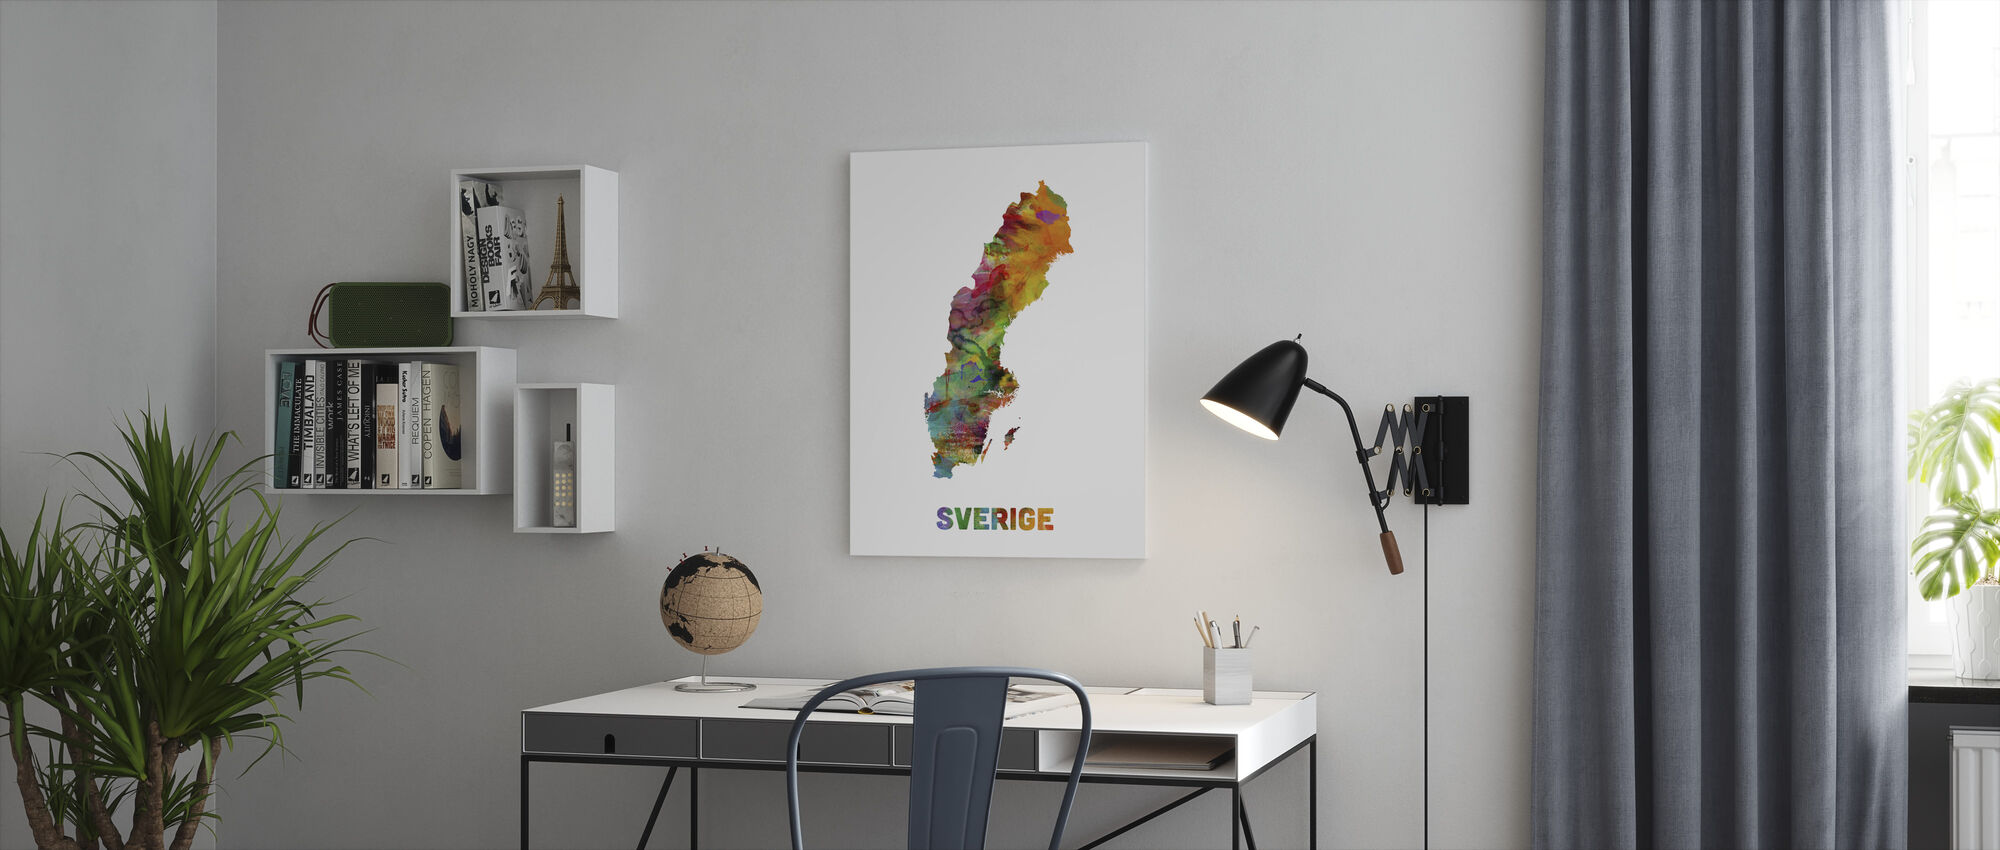 Sweden Watercolor Map - Canvas print - Office